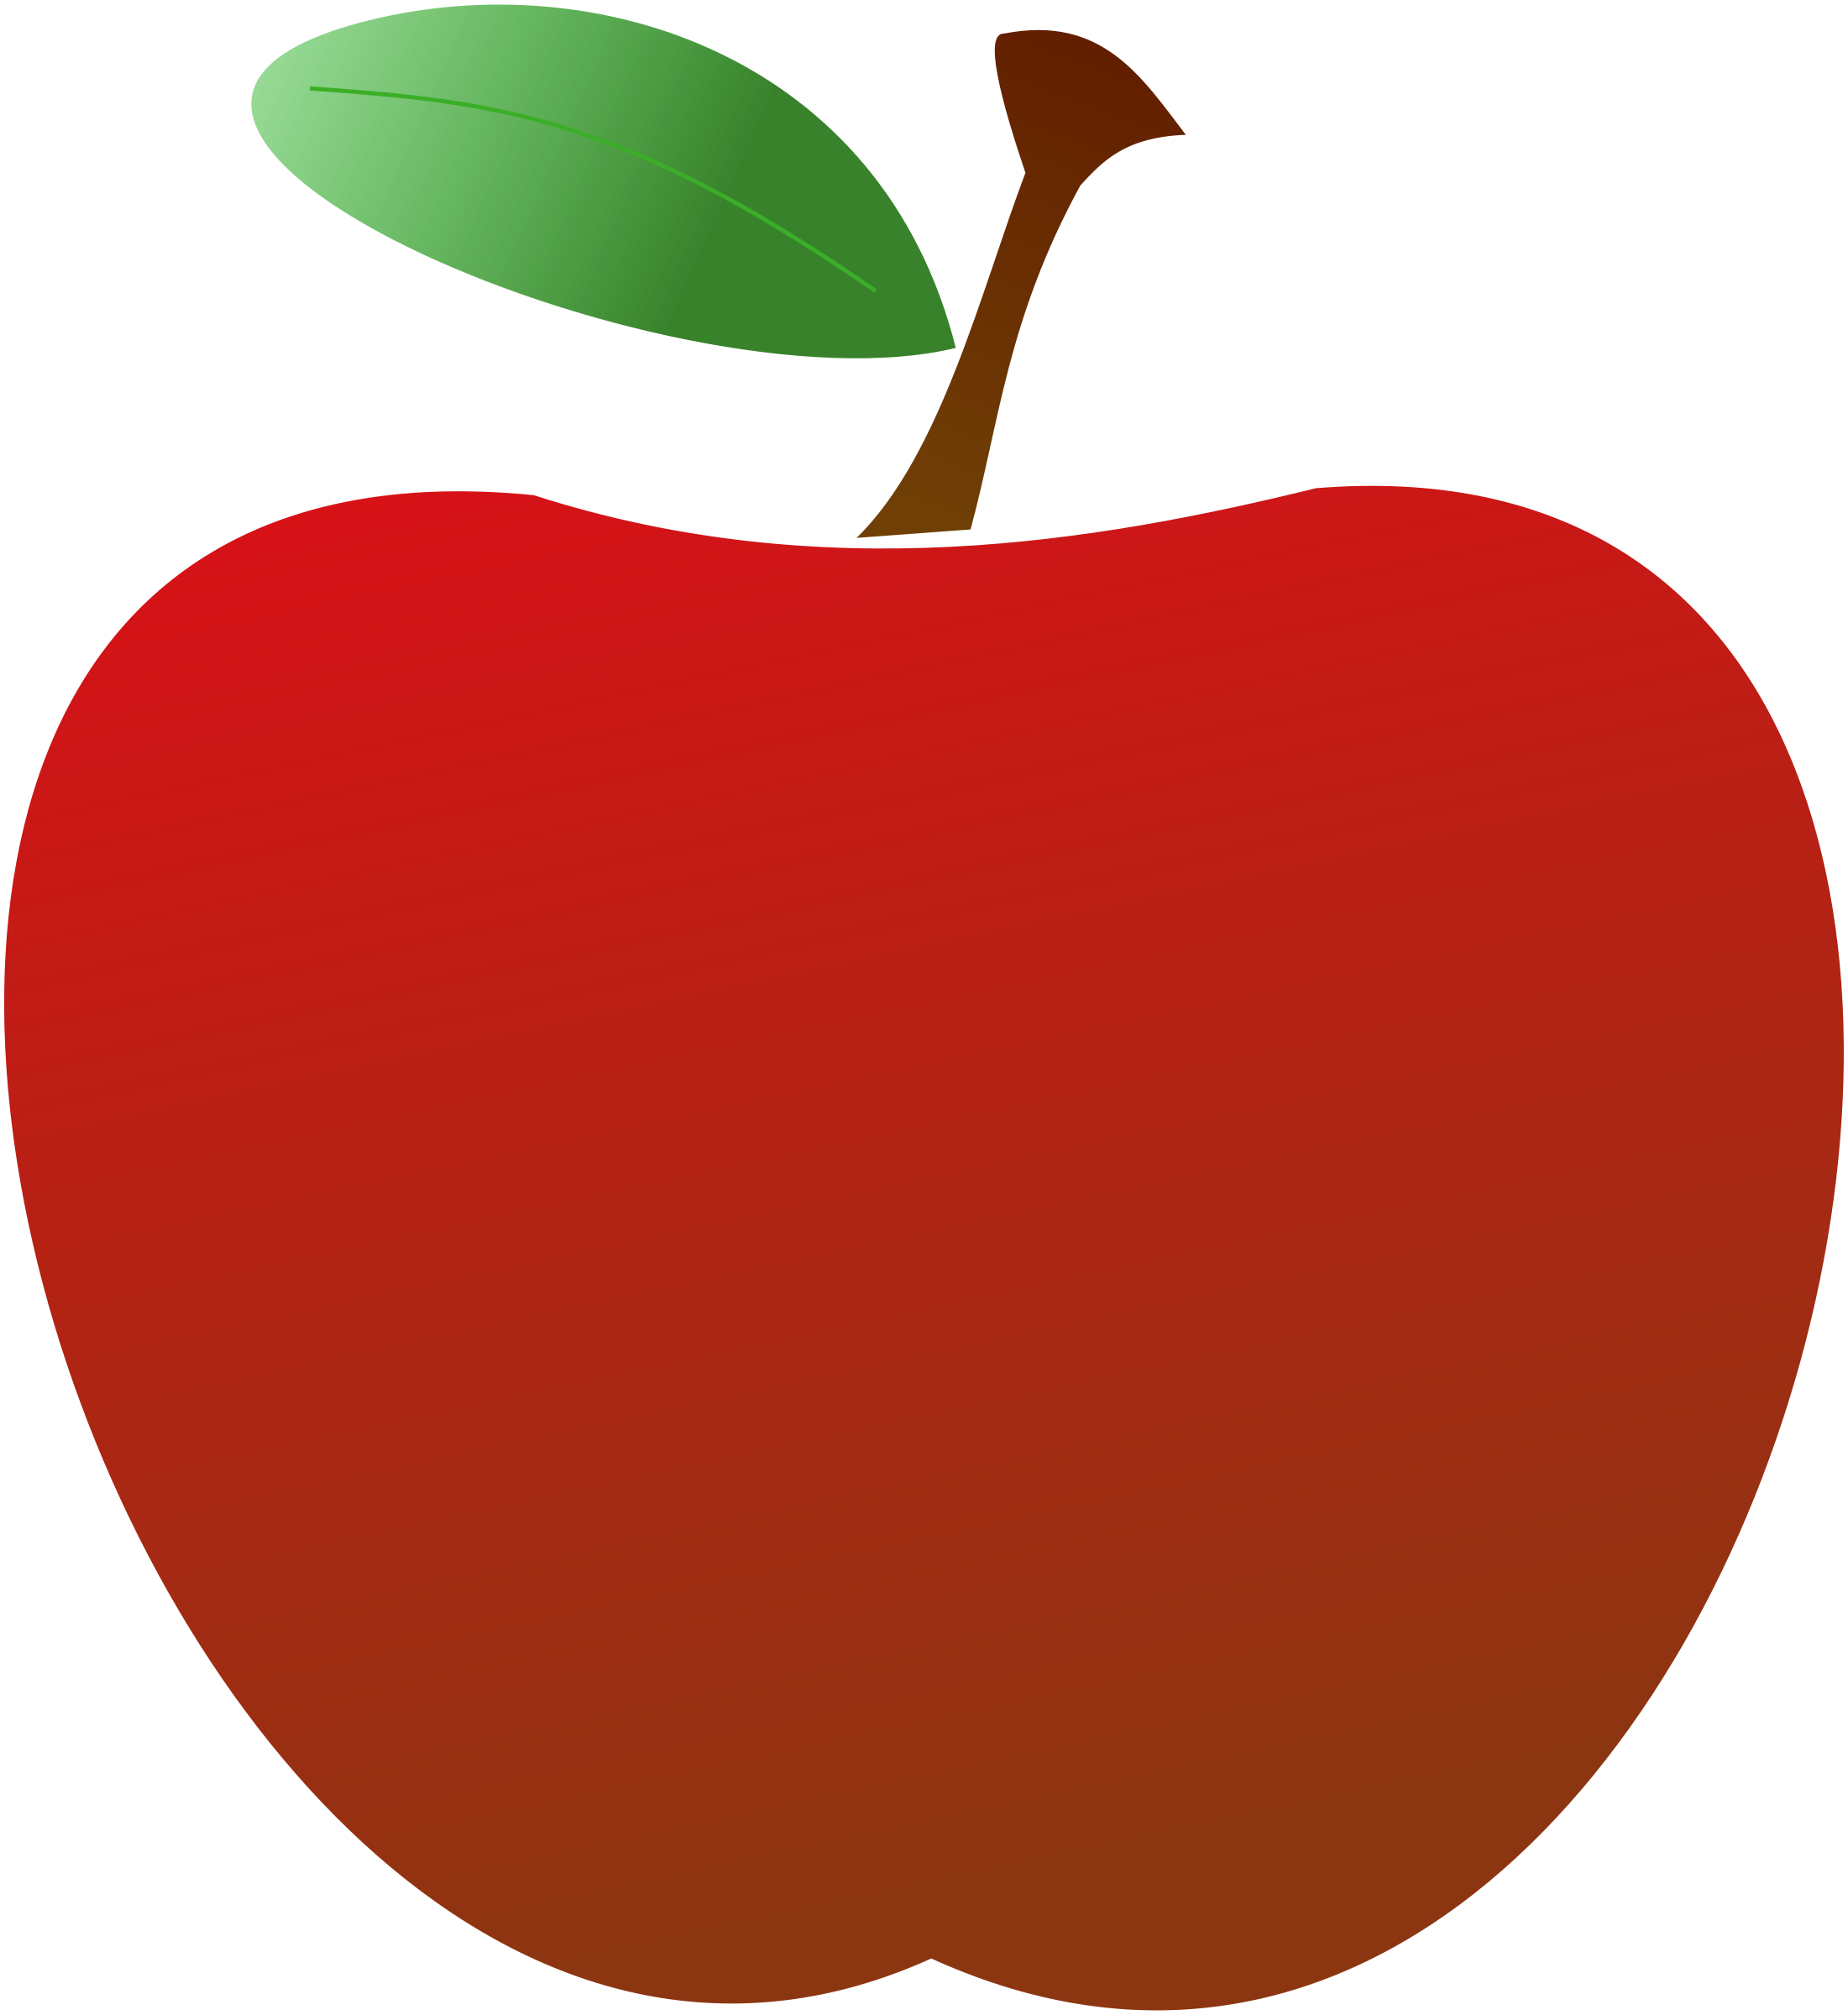 Apple monogram clipart jpg freeuse stock Teacher Apple Clipart | Clipart Panda - Free Clipart Images ... jpg freeuse stock